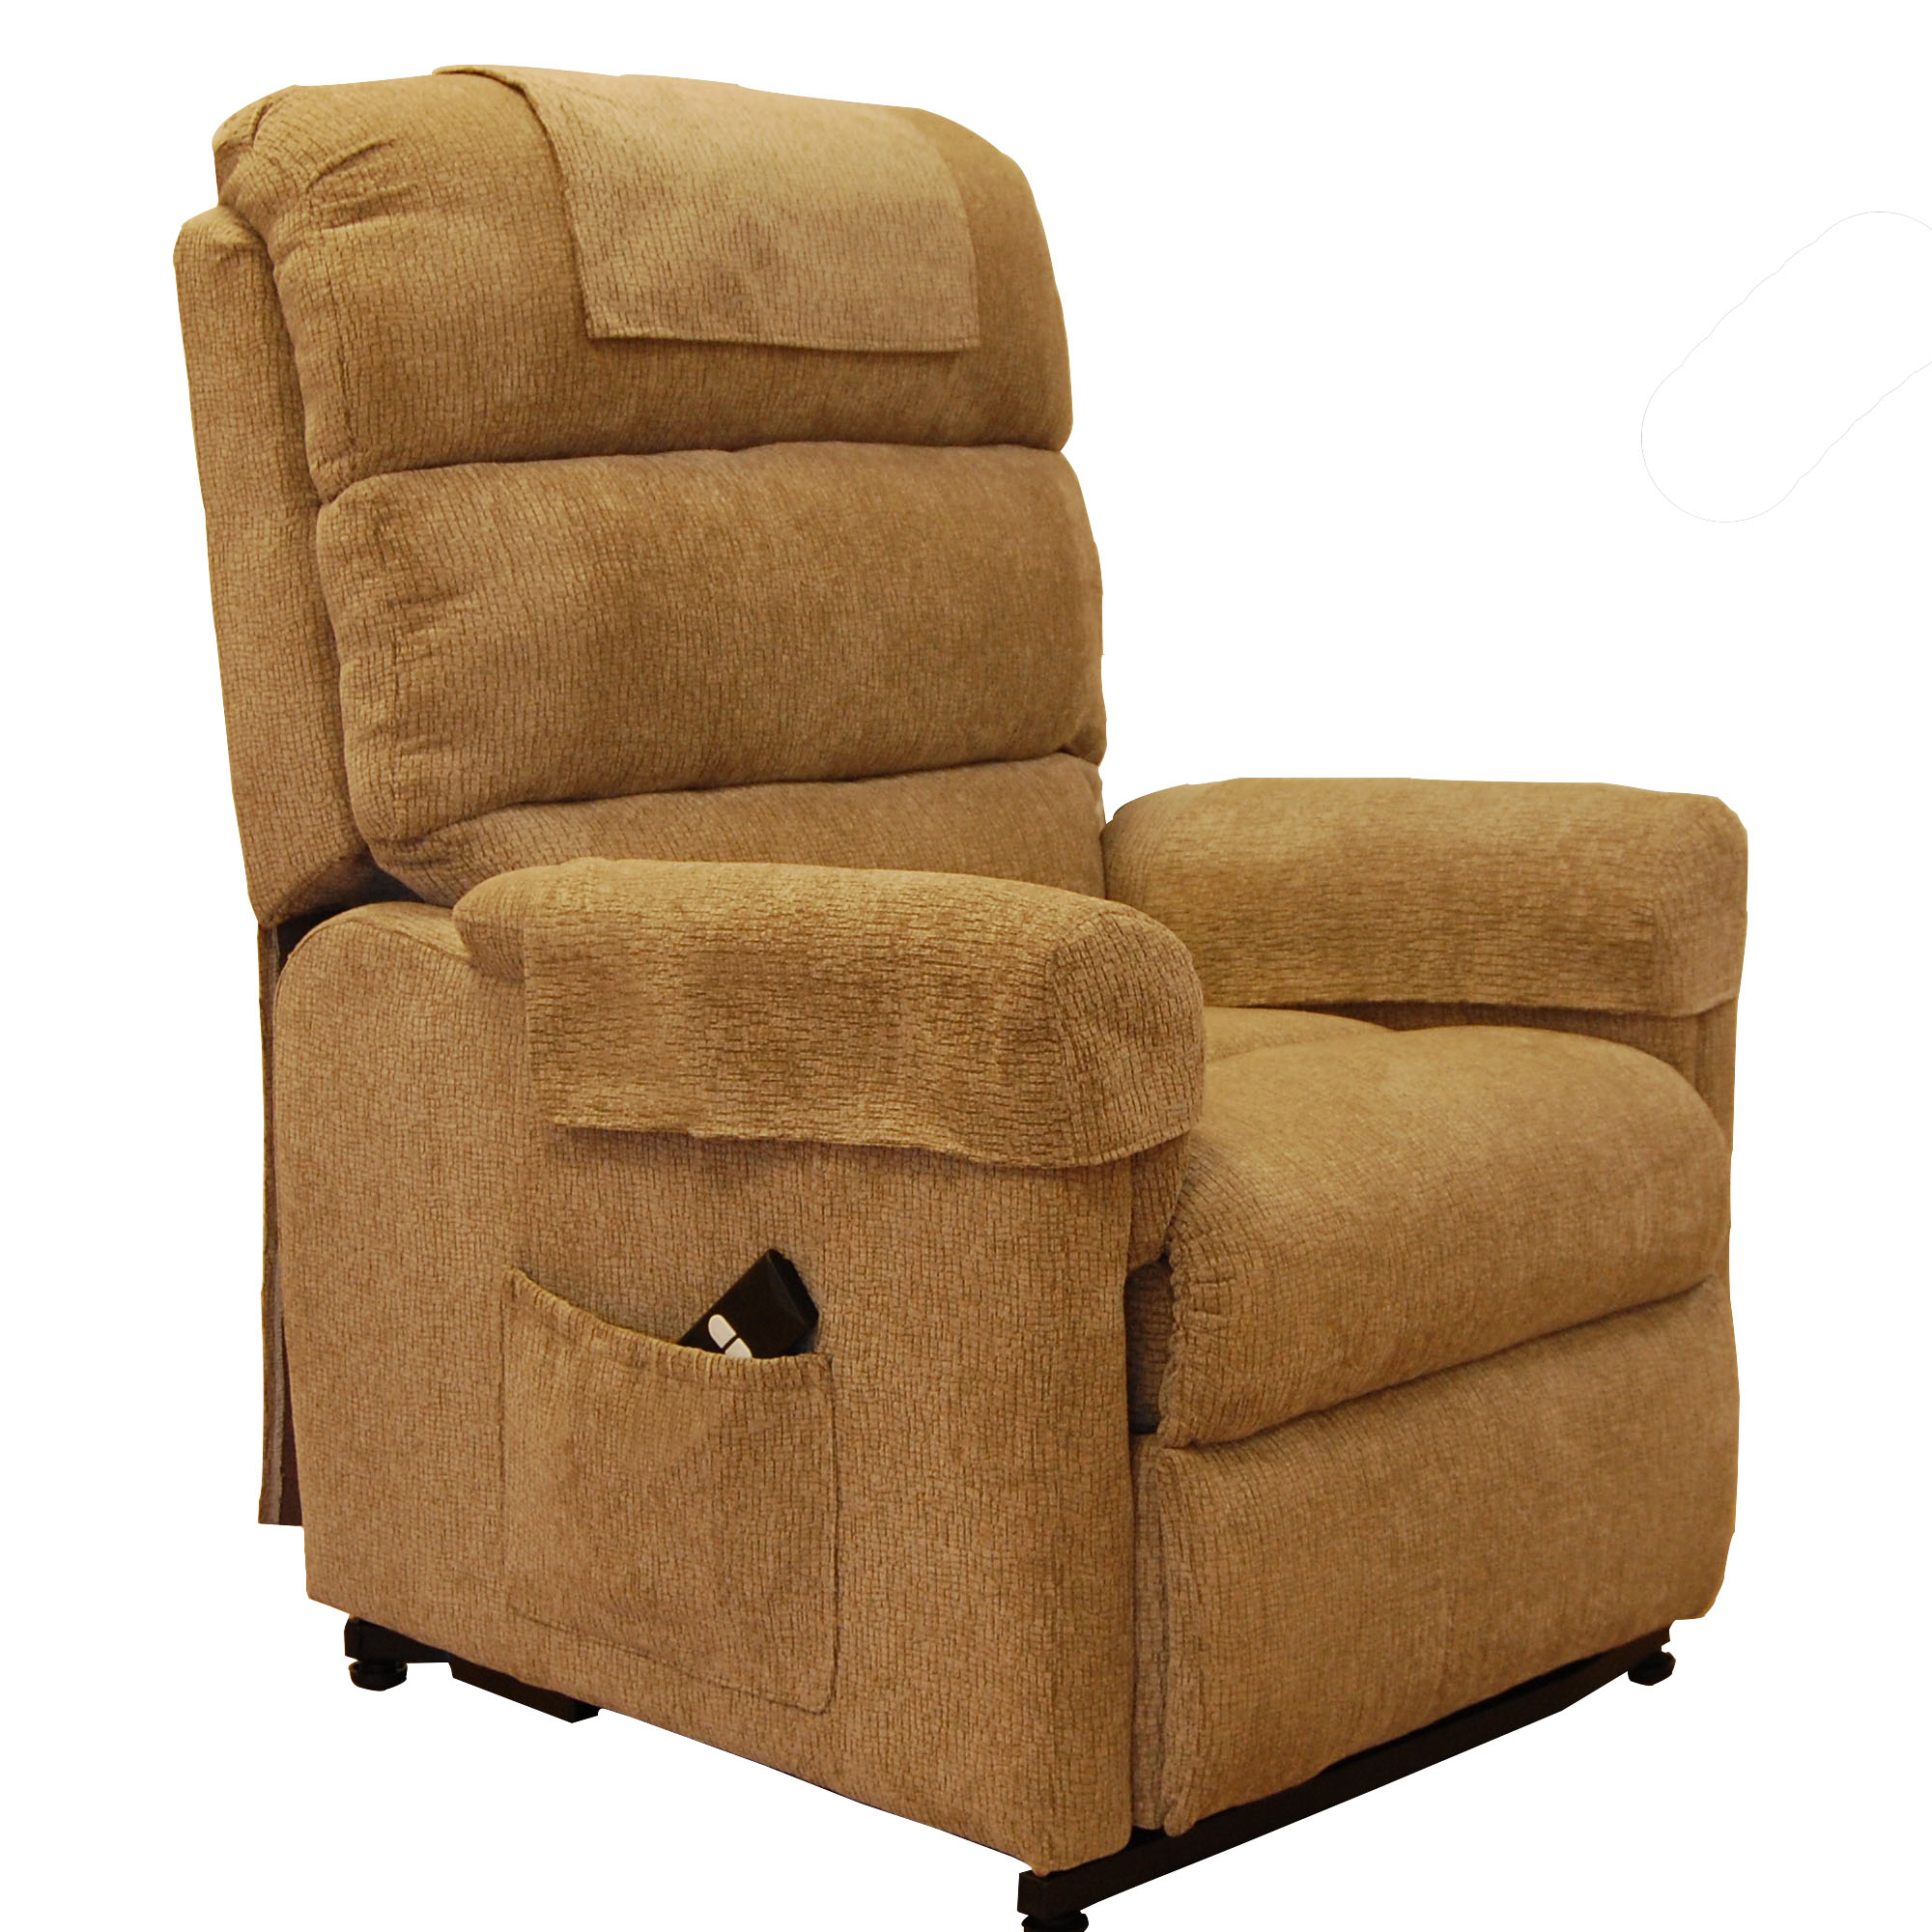 home products item felicia width recliner petiteswivel best recliners trim threshold height rocker petite swivel furnishings